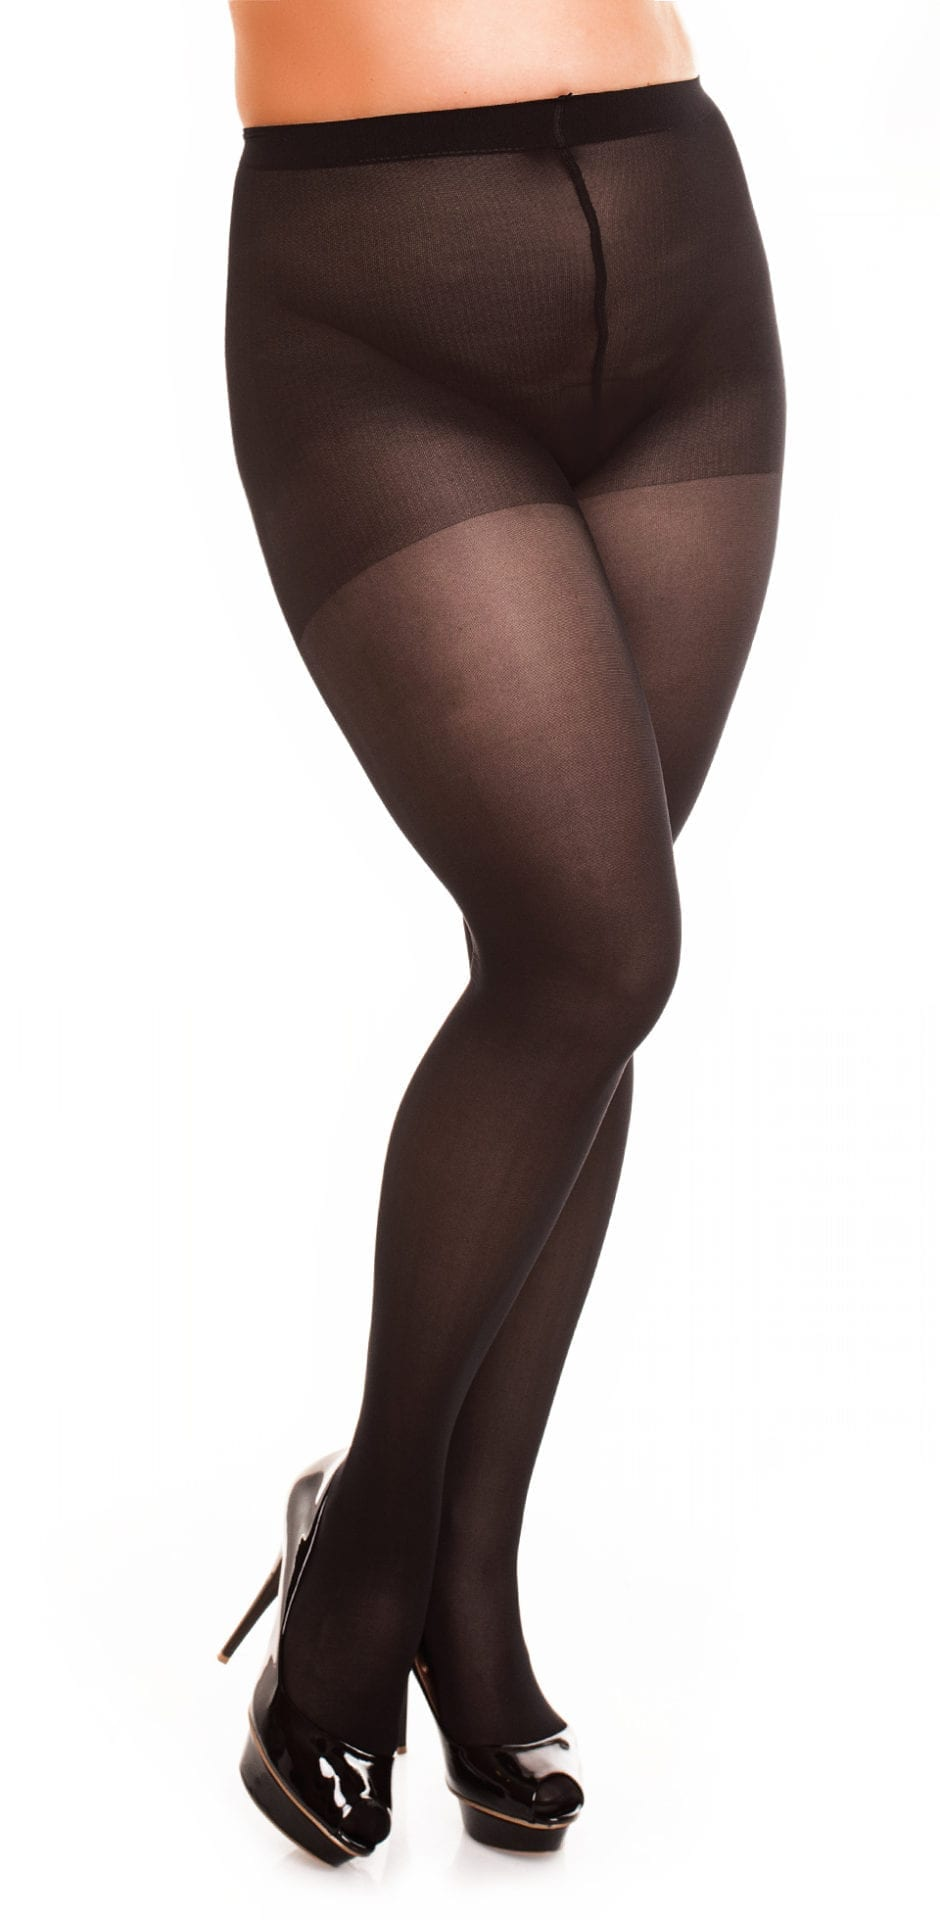 Plus size model wearing Glamory vital 40 support tights in color black front view close up